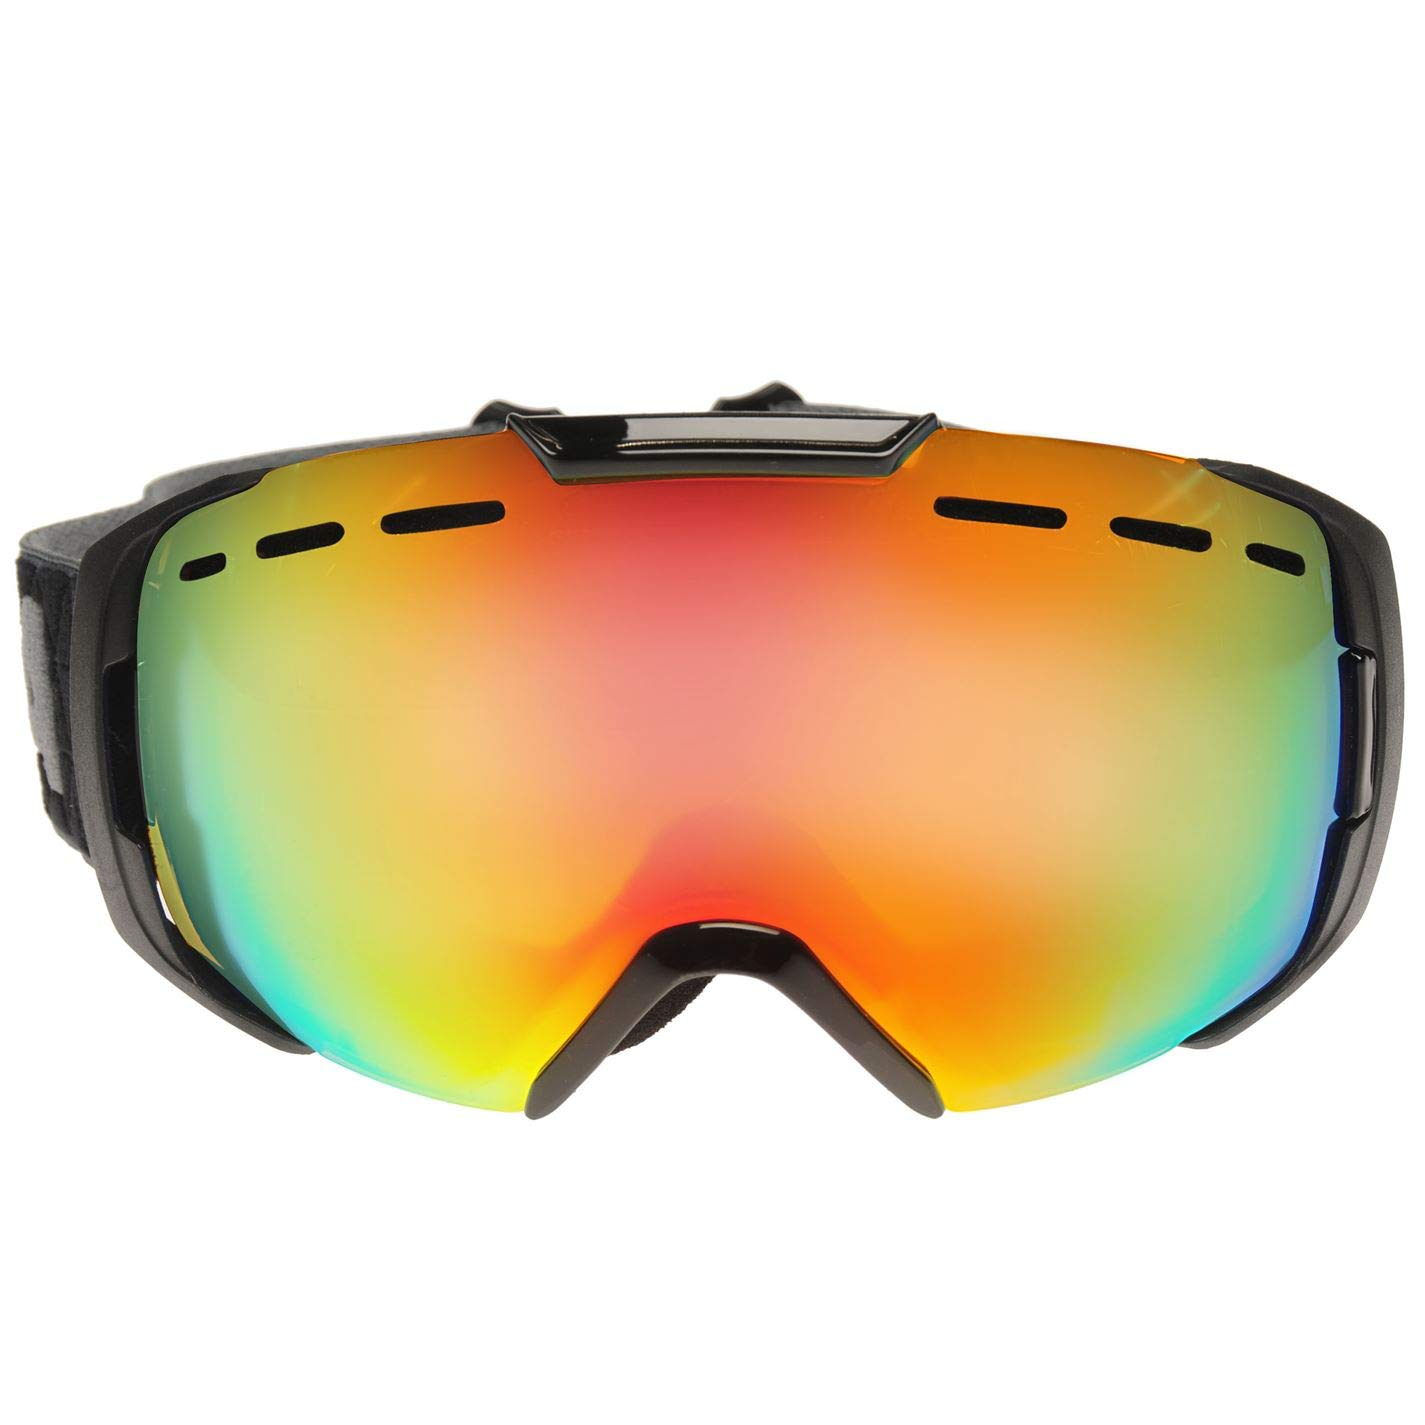 Nevica Mens Whistler Ski Goggles Black  Amazon.co.uk  Clothing 8f231800687